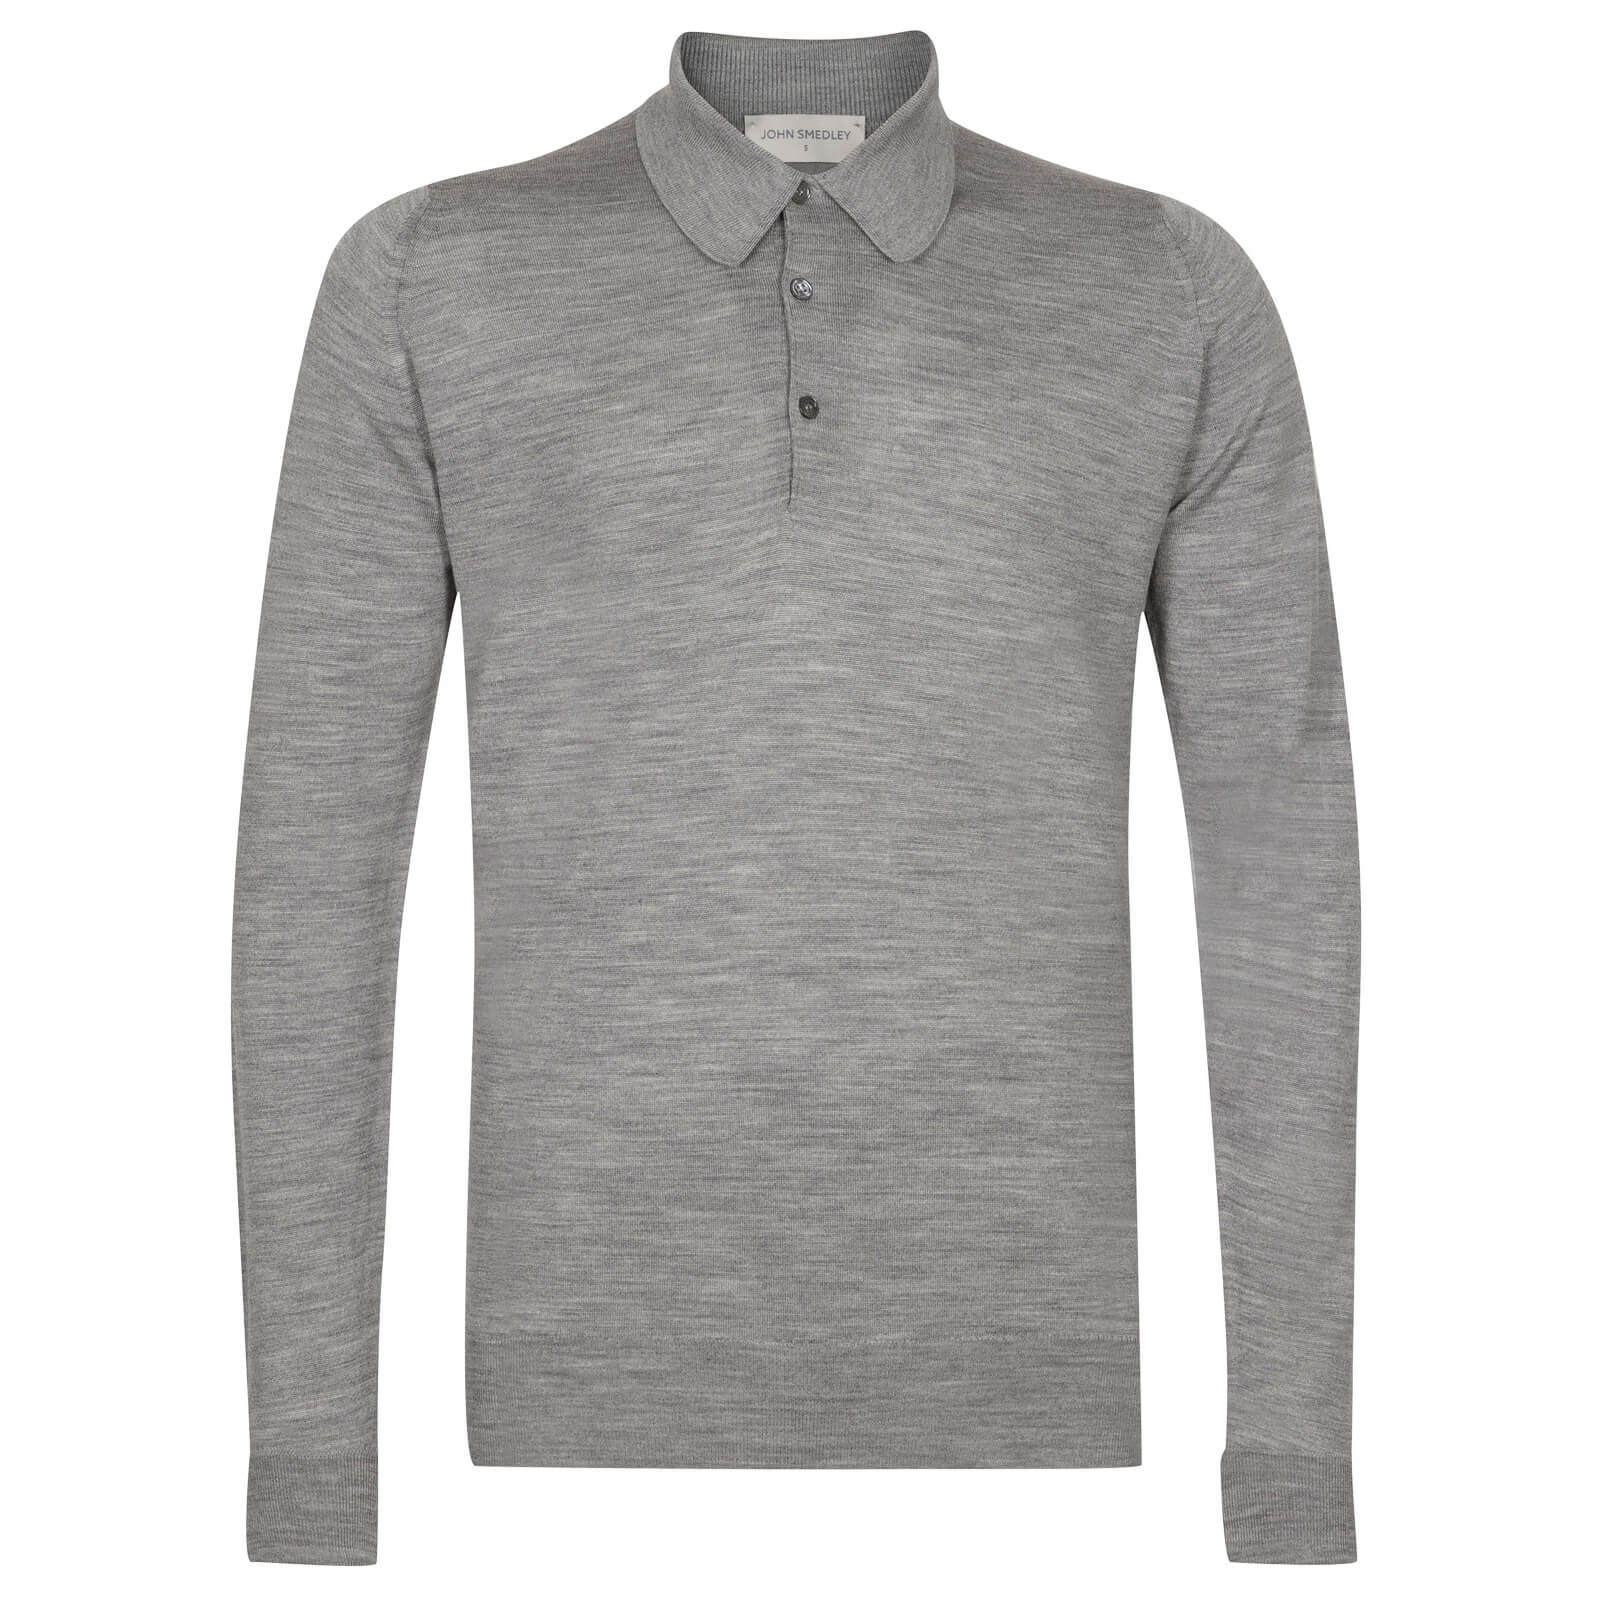 John Smedley long sleeved, three buttoned shirt made from fine merino wool